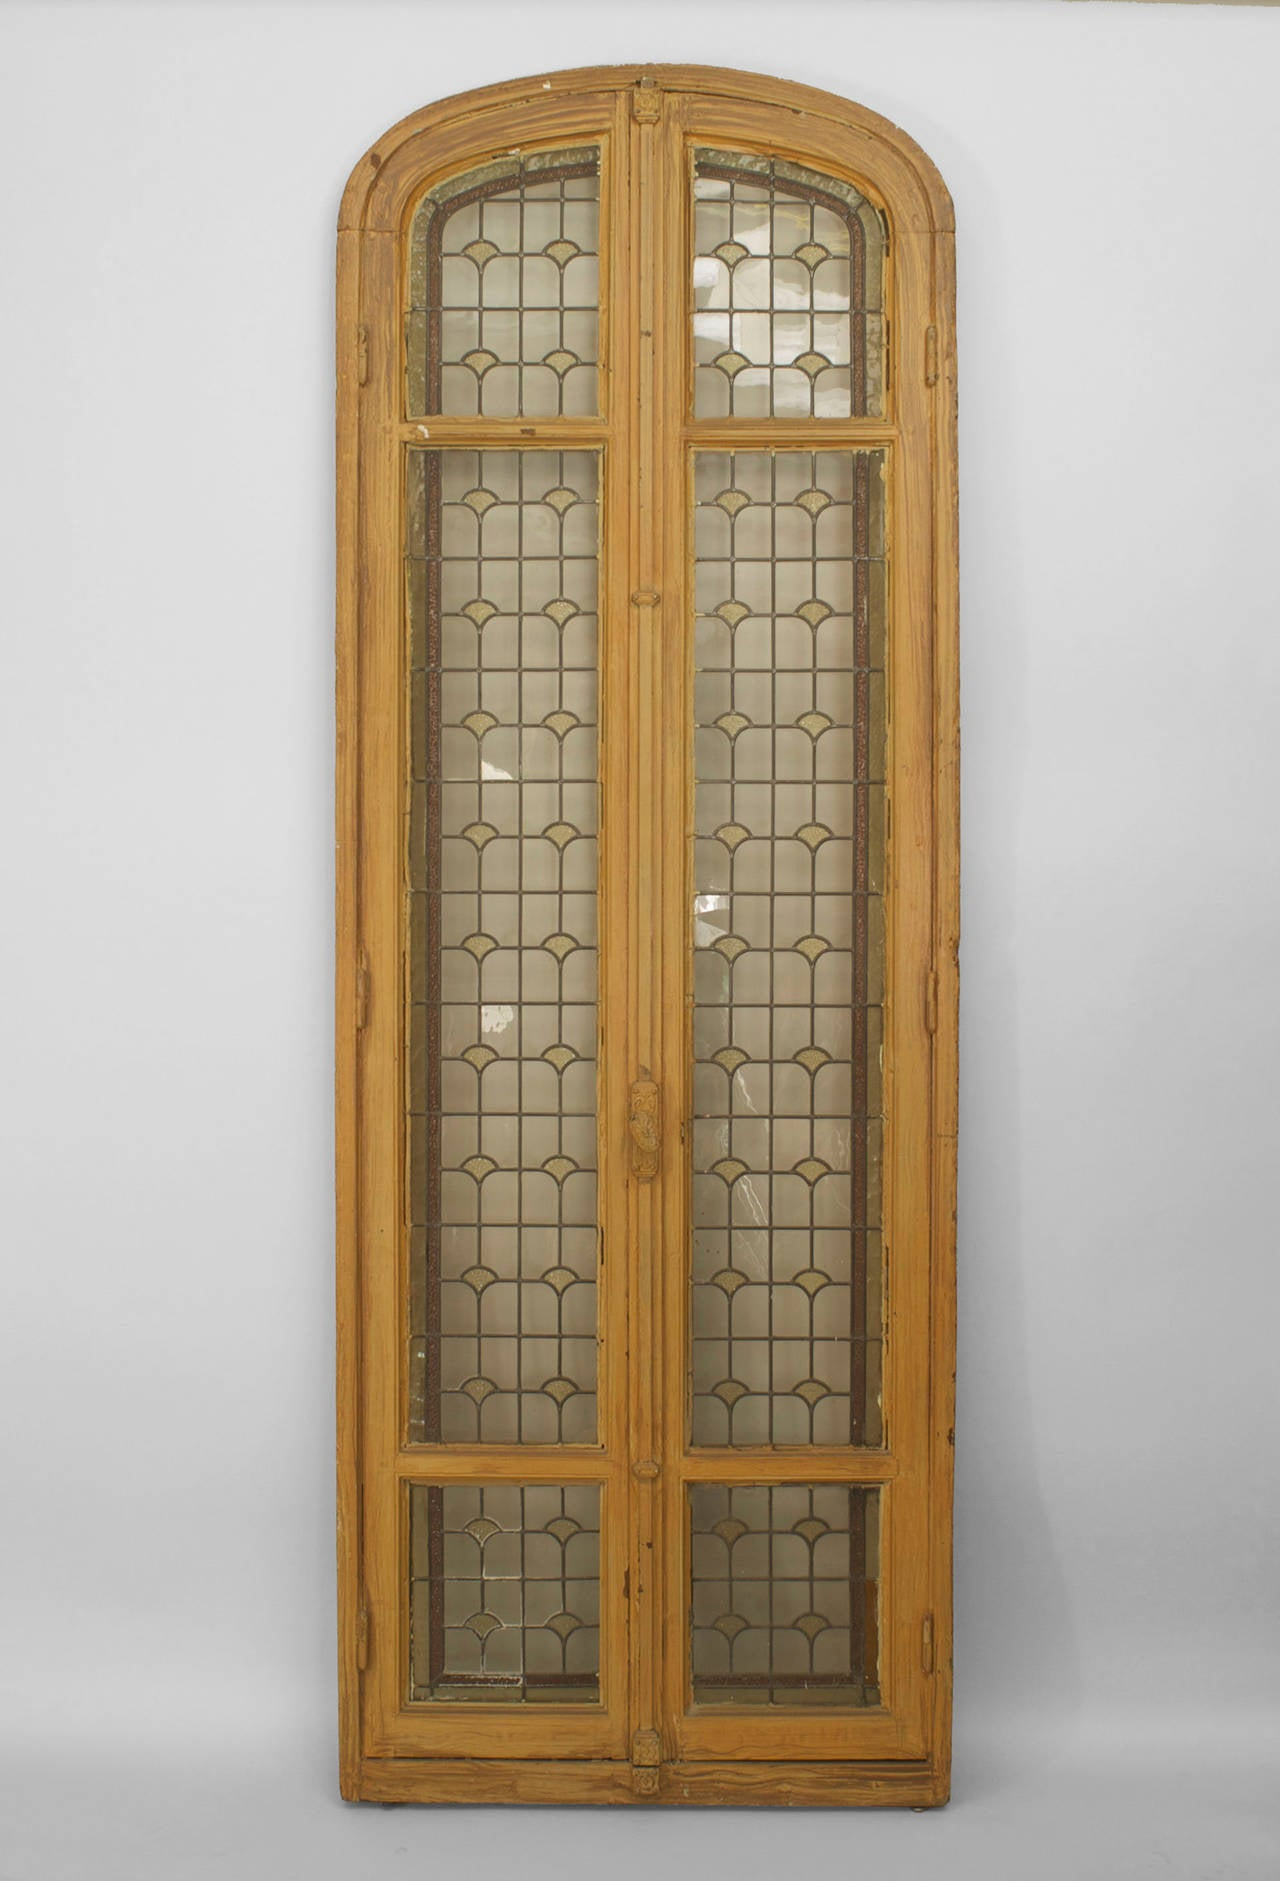 1881 #926C39 Three 19th C. French Stained Glass Doors For Sale At 1stdibs pic Leaded Glass French Doors 35411280